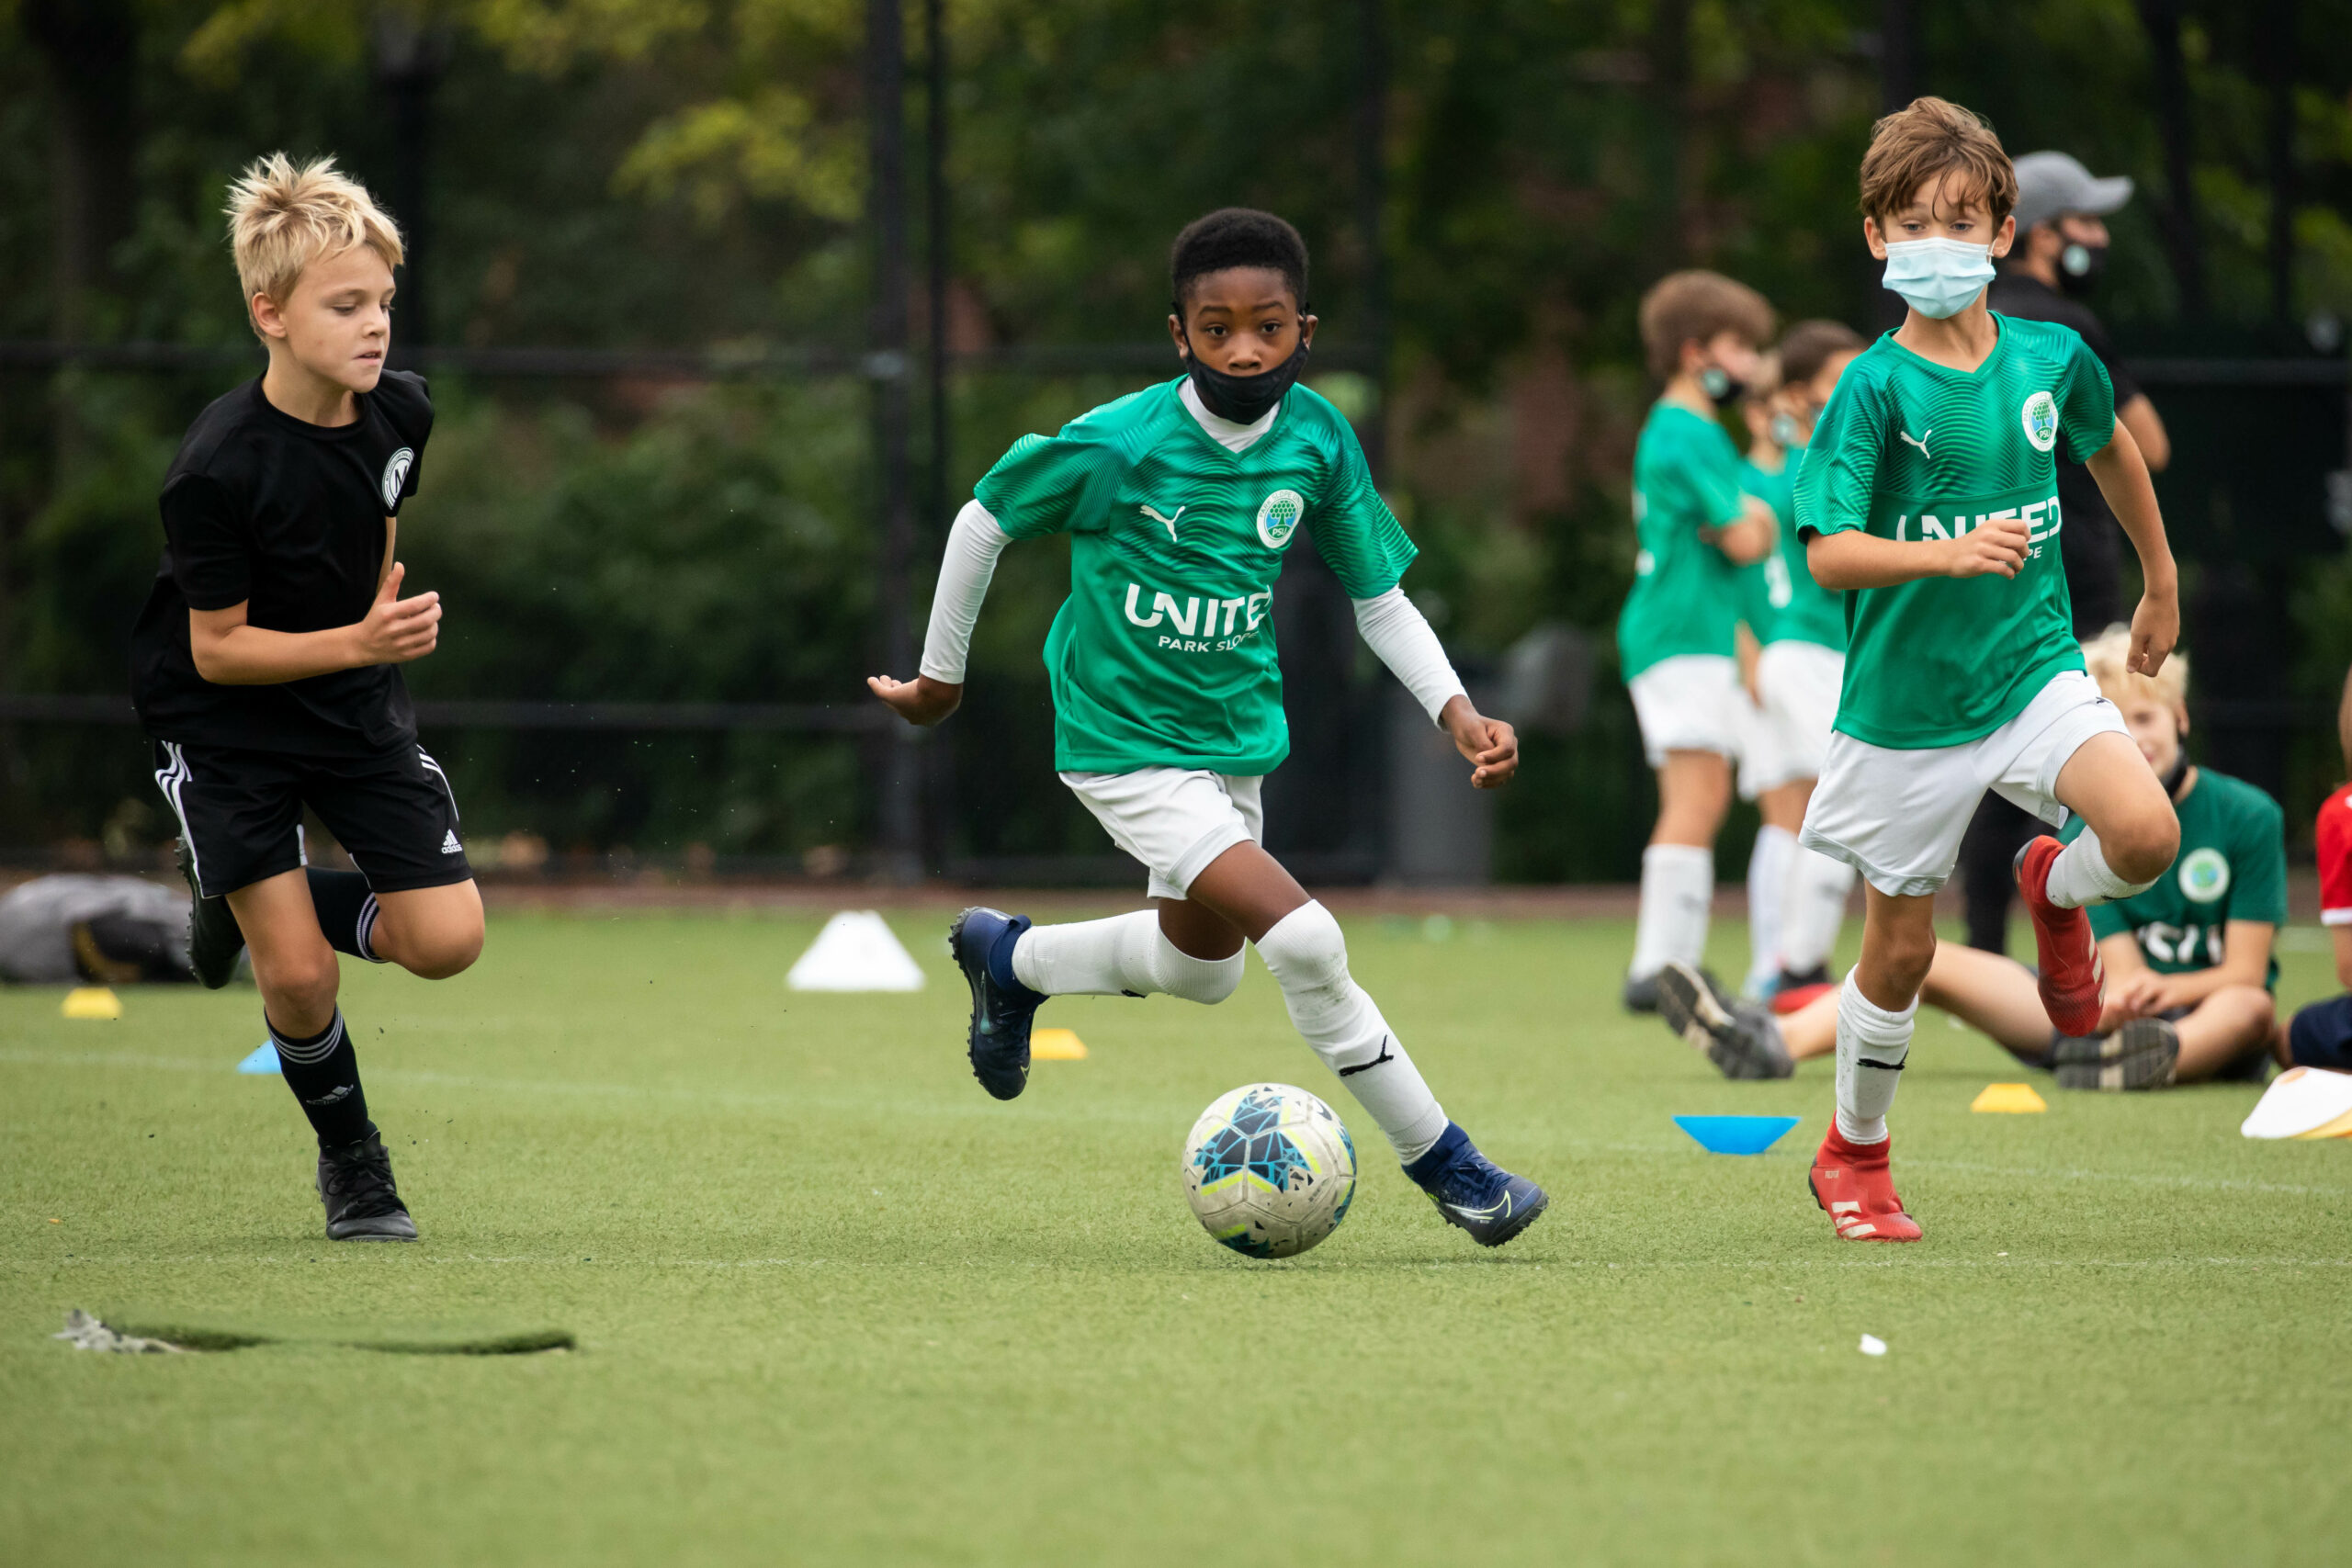 BROOKLYN, NY — SEPTEMBER 26, 2020:  Park Slope United's (PSU) 2010 Bianconeri defeat Metropolitan Oval 10-1 at St John's Park on September 26, 2020 in Brooklyn, NY.  Photograph by Michael Nagle